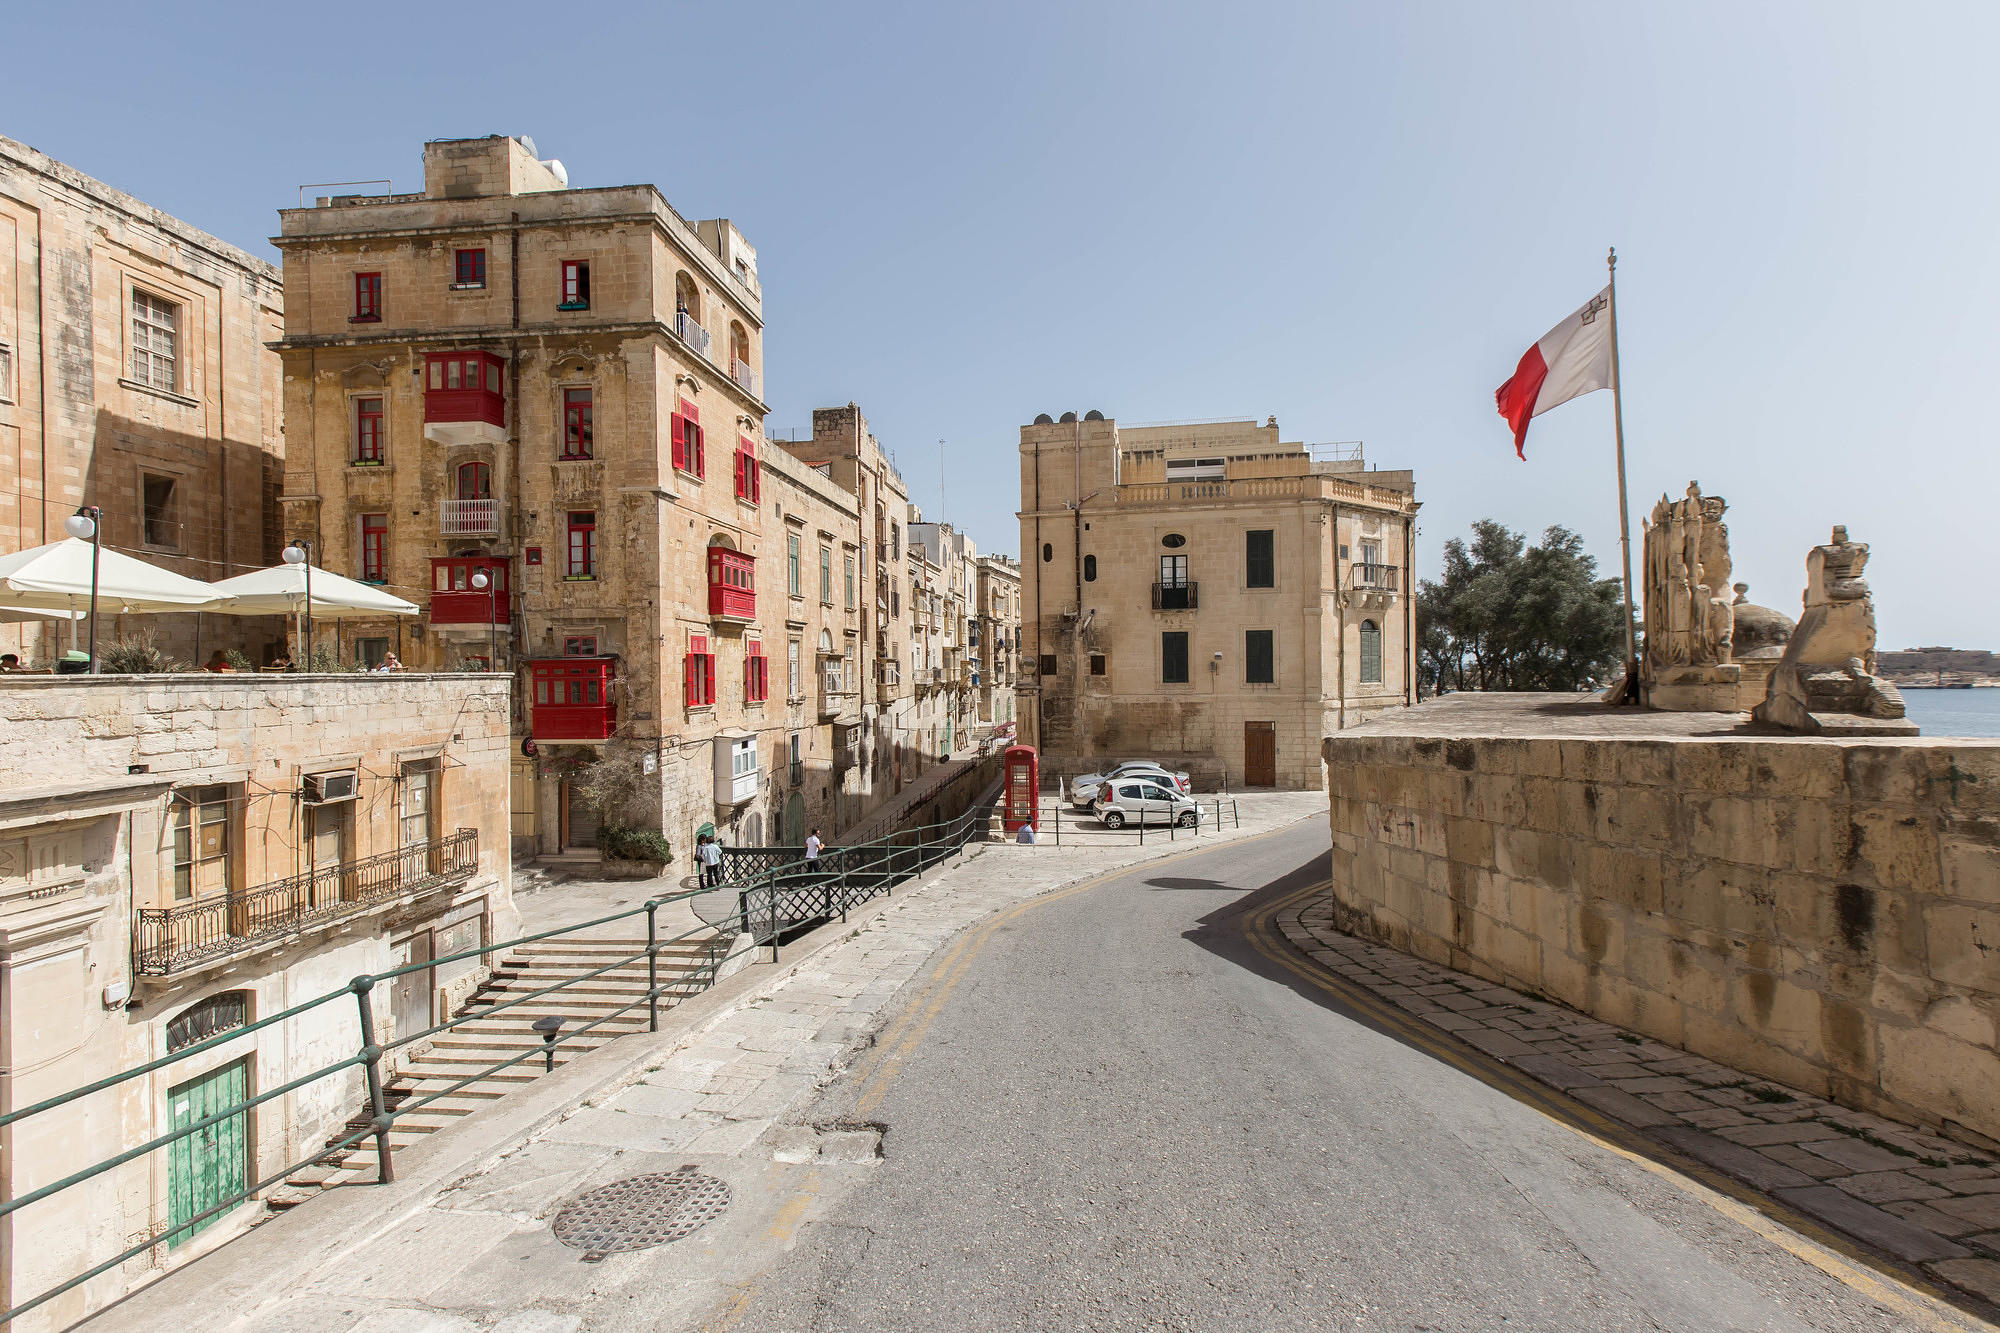 Grand Harbour Hotel, Malta